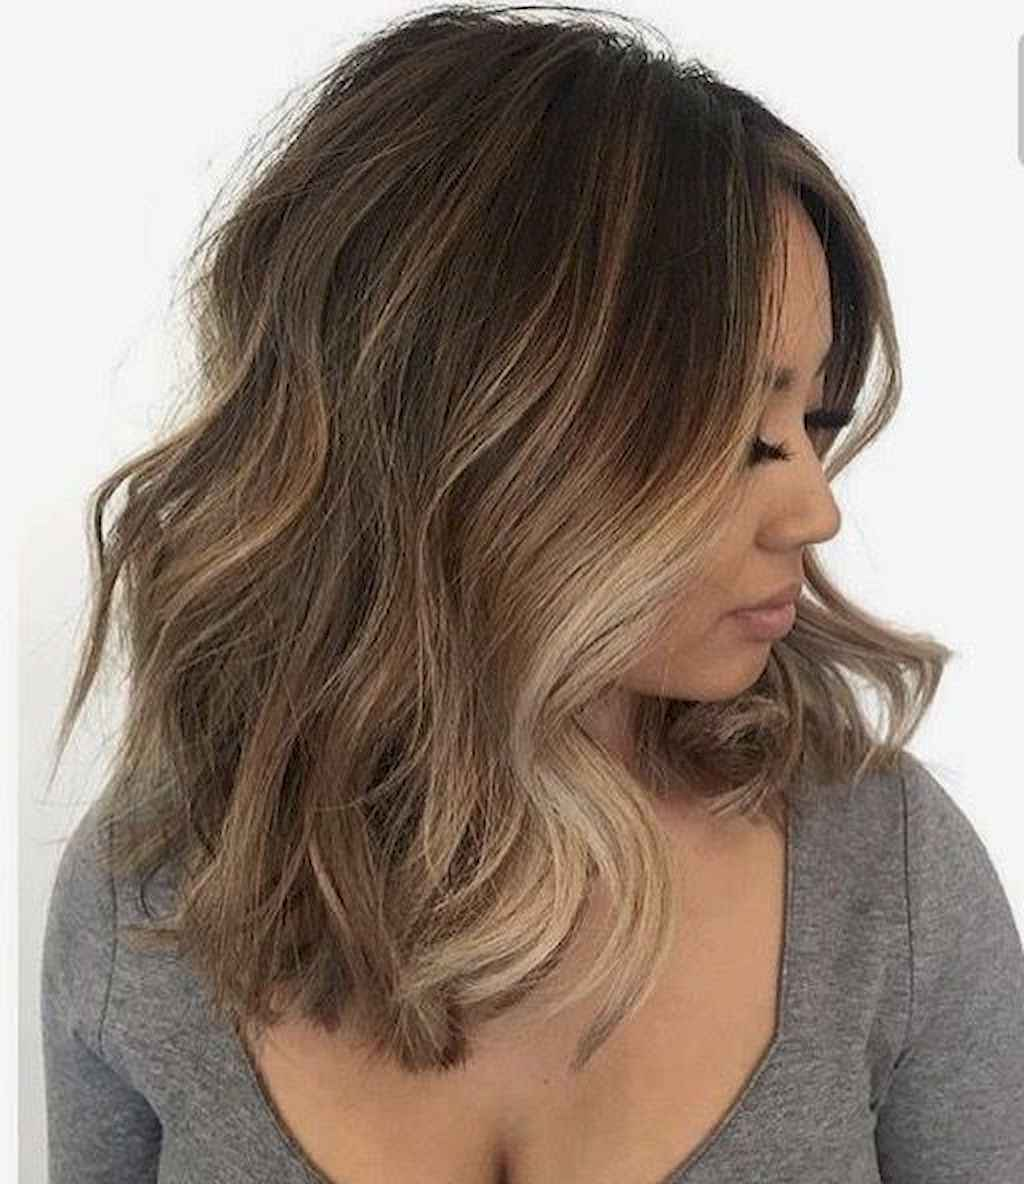 23 Cute Ideas To Spice Up Light Brown Hair